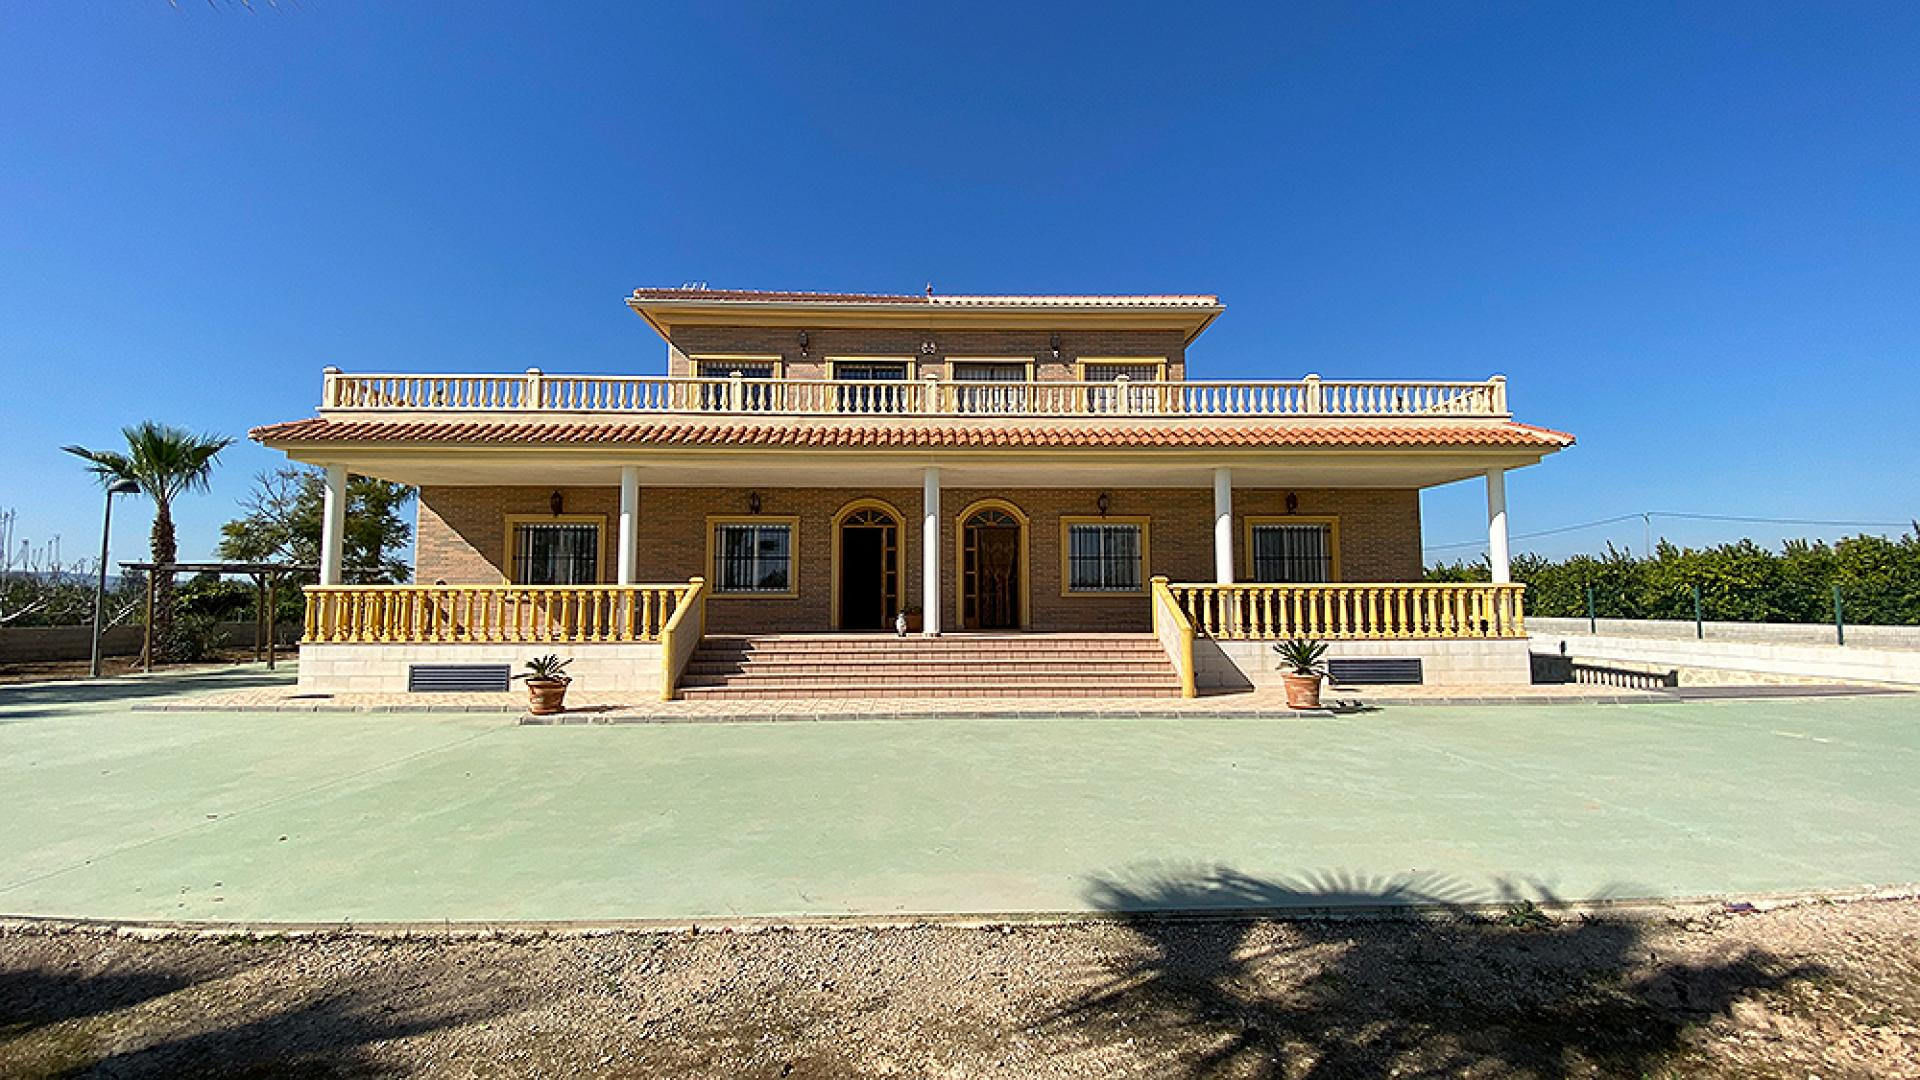 Villa in Alicante (Los Montesinos)